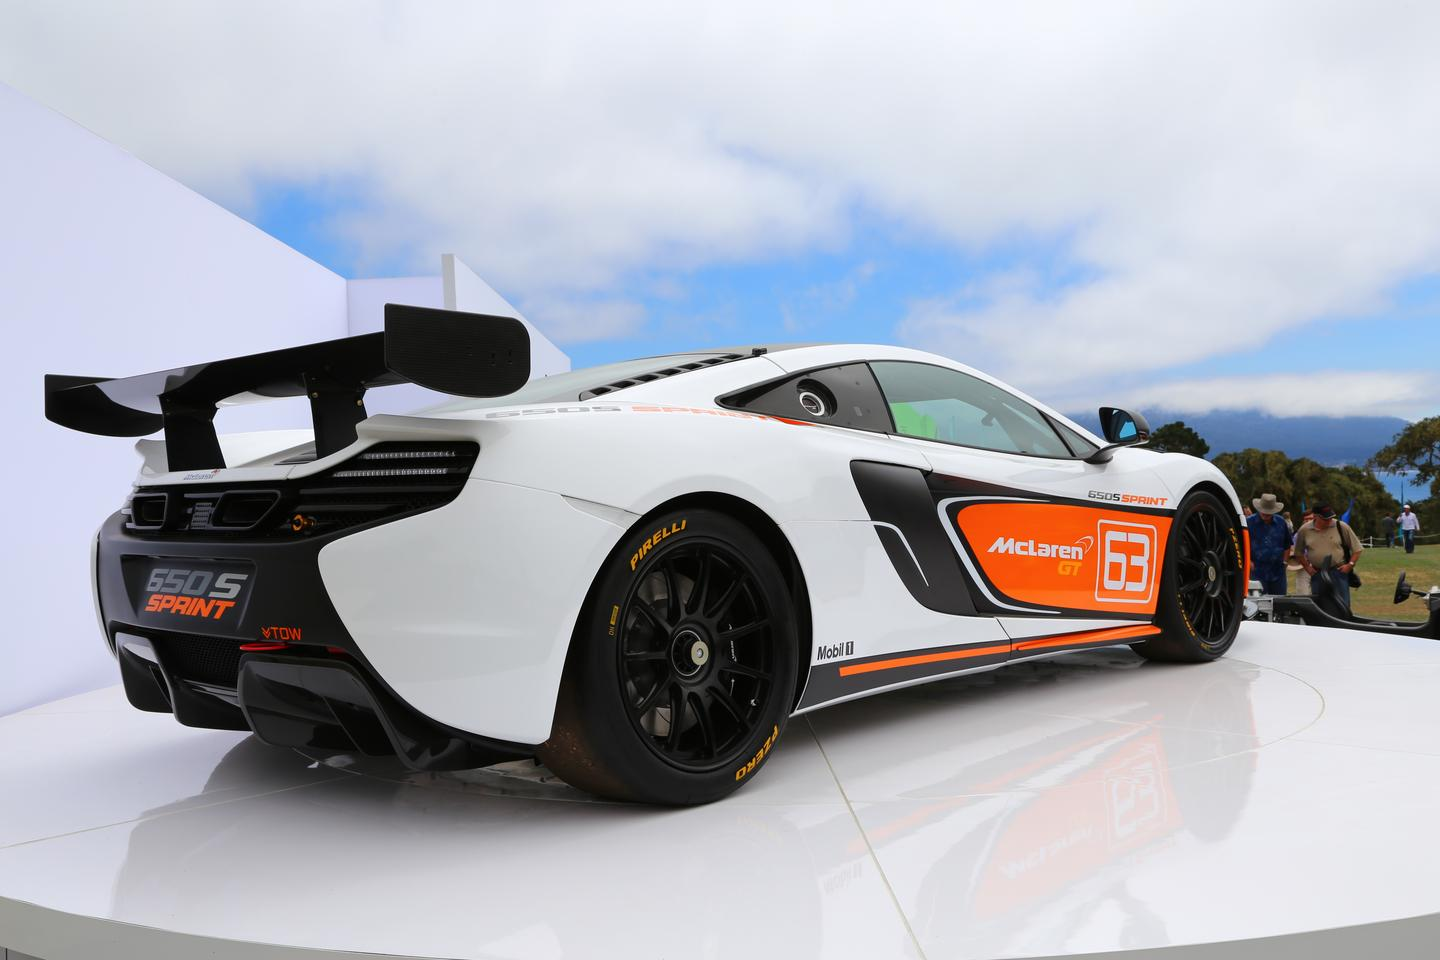 McLaren's new track-inspired 650S Sprint greets visitors to the 2014 Concours d'Elegance atop Peter Hay hill (Photo: Angus MacKenzie/Gizmag.com)